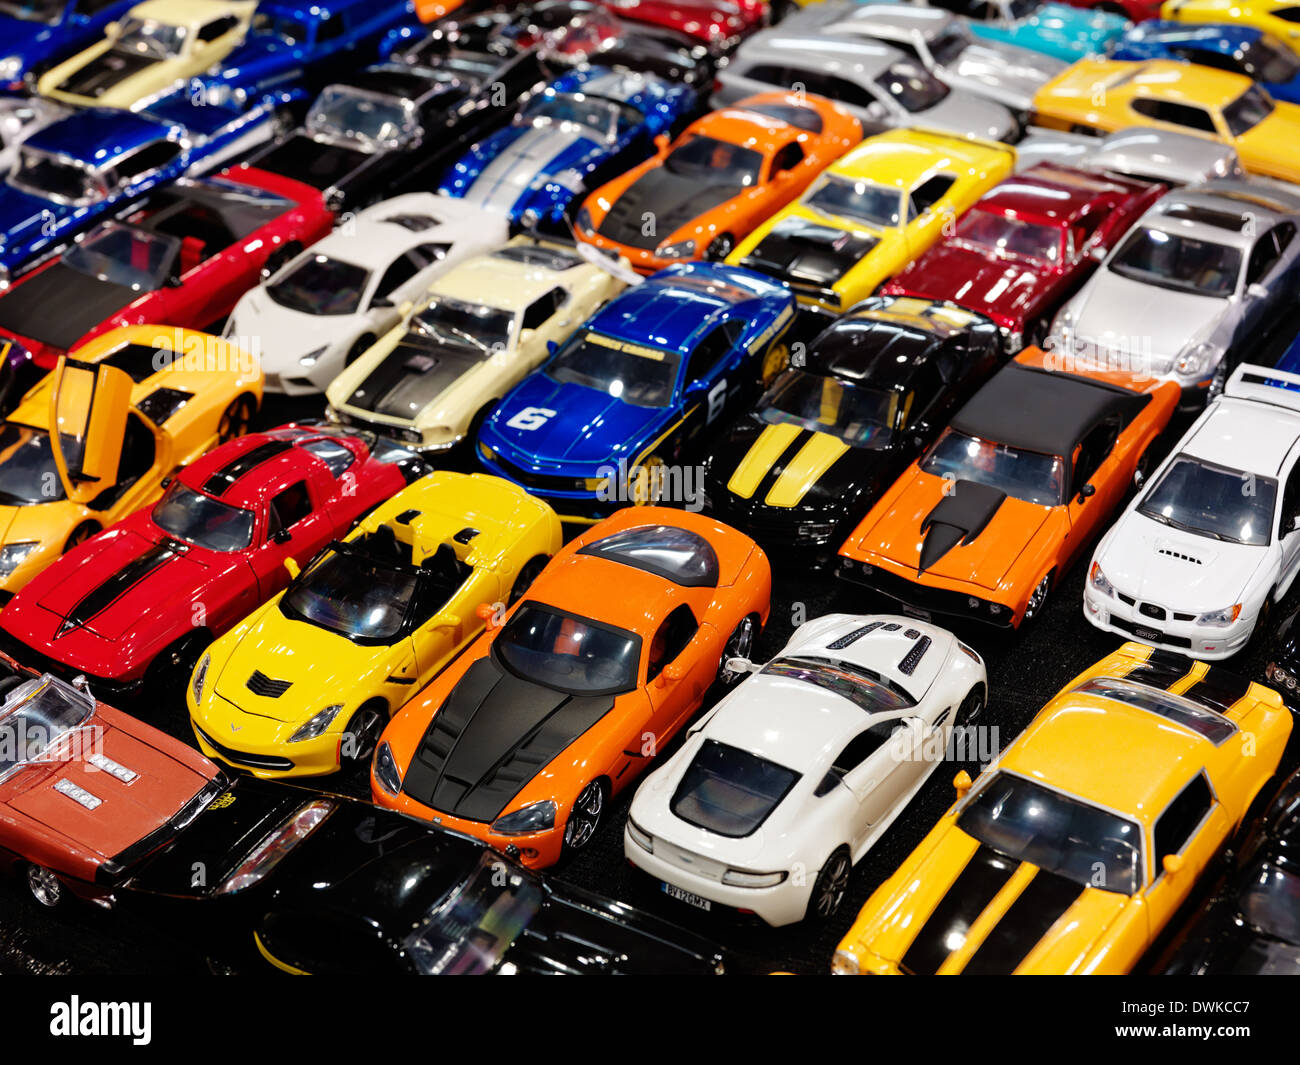 Sports cars, colorful die-cast models closeup - Stock Image